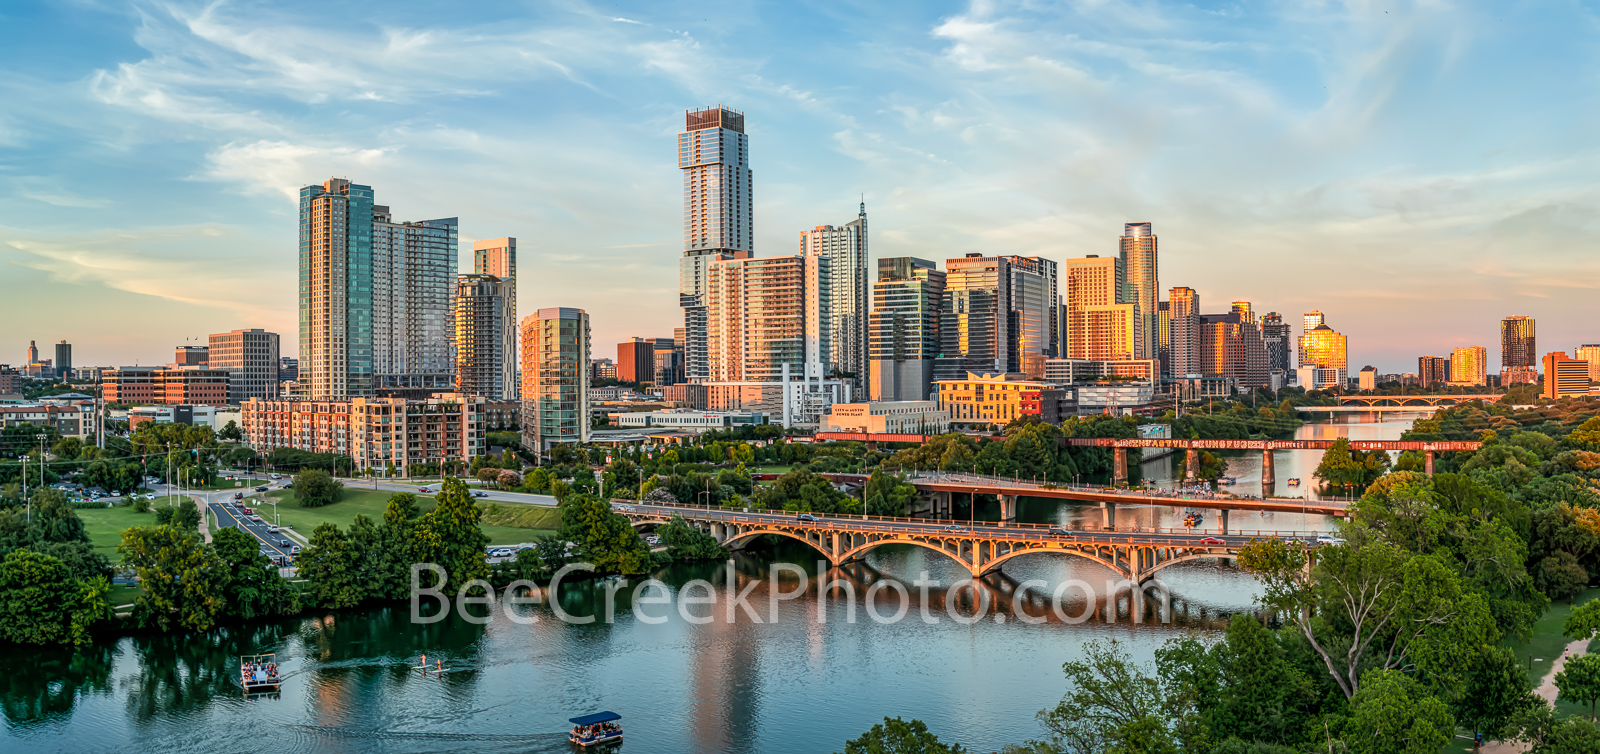 austin skyline, aerial, golden glow, pics of texas, lady bird lake, town lake, downtown, austin, lamar bridge, pfluger bridge, pedestrian bridge, ut tower, reflections, capital cruises, boat, sups, pr